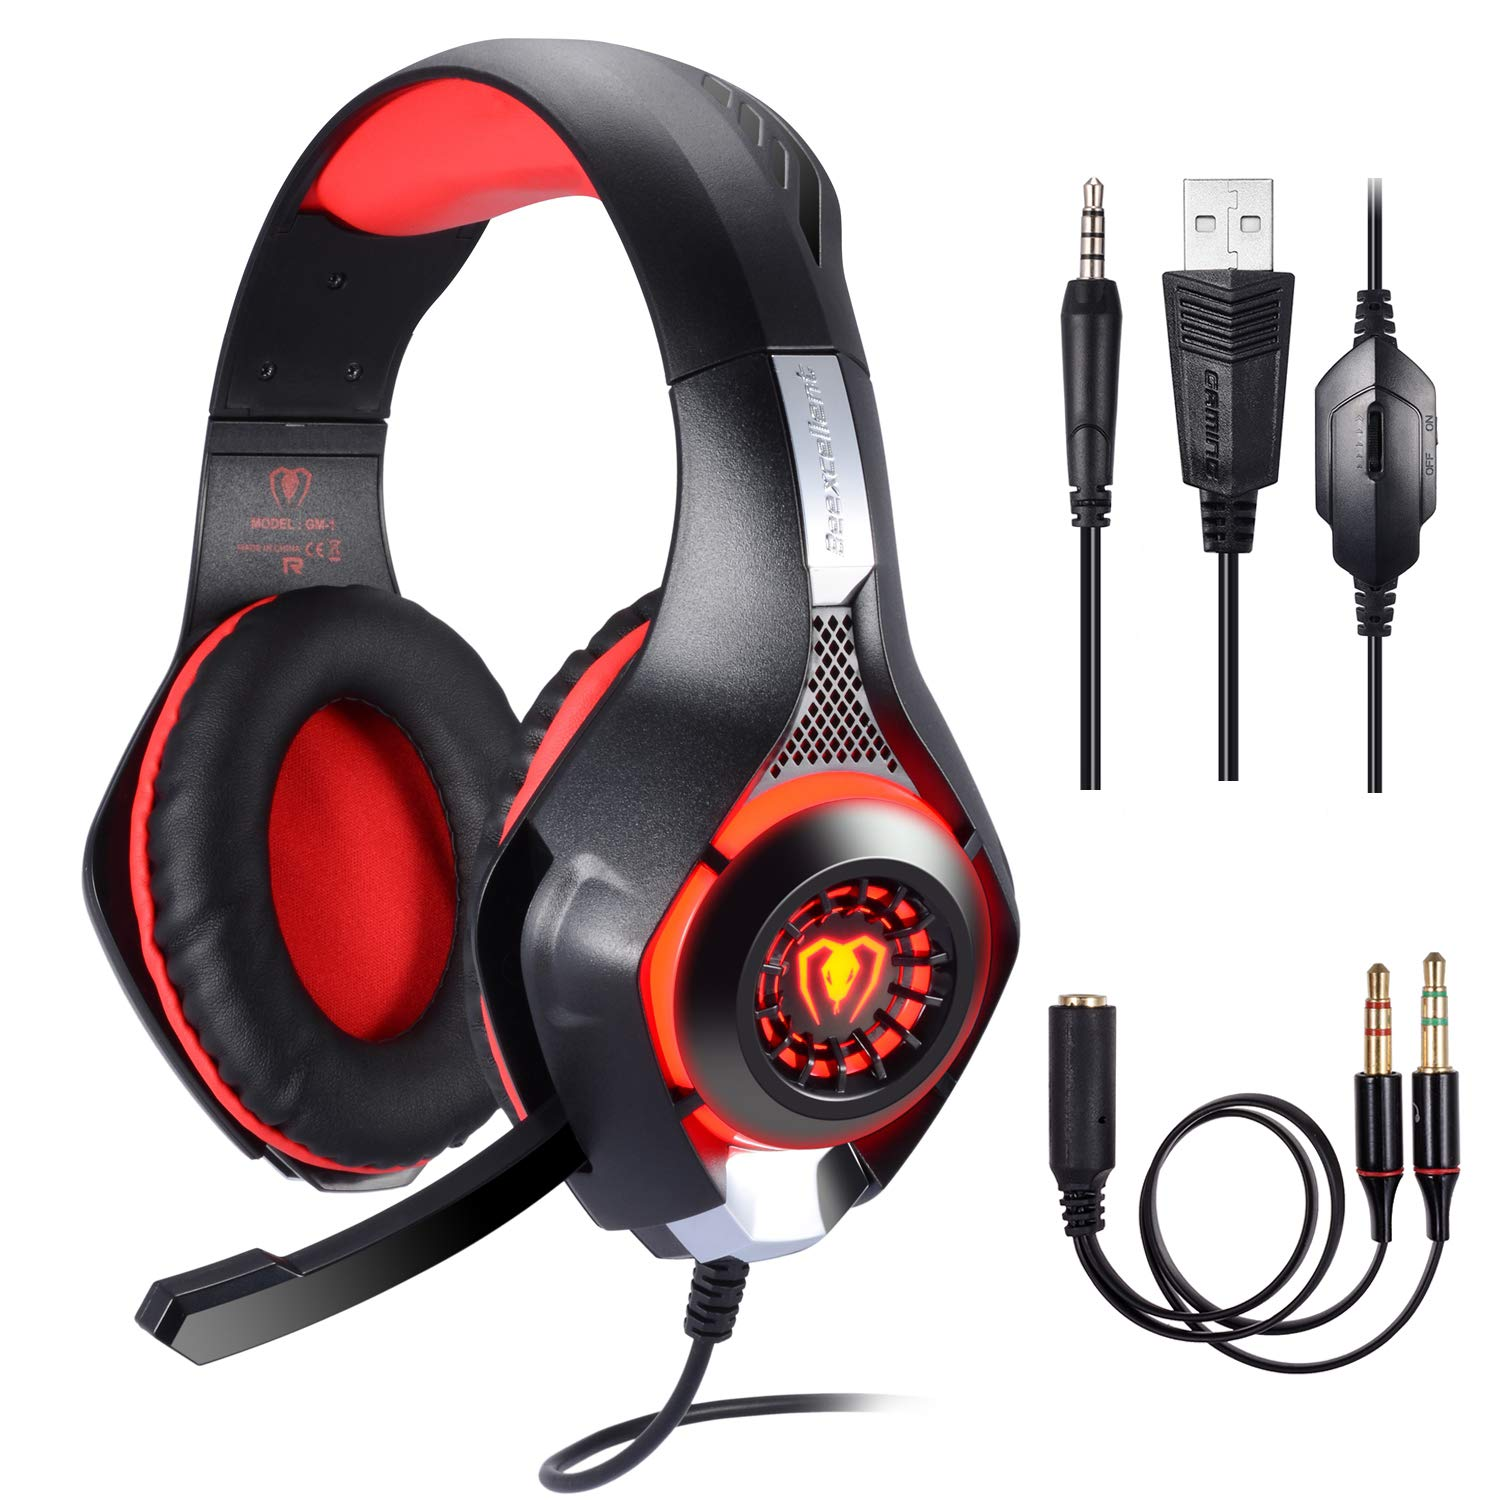 Cascos Gaming PS4 PC Xbox One, Cascos Gamer, Gaming Auriculares con Microfono, Samoleus